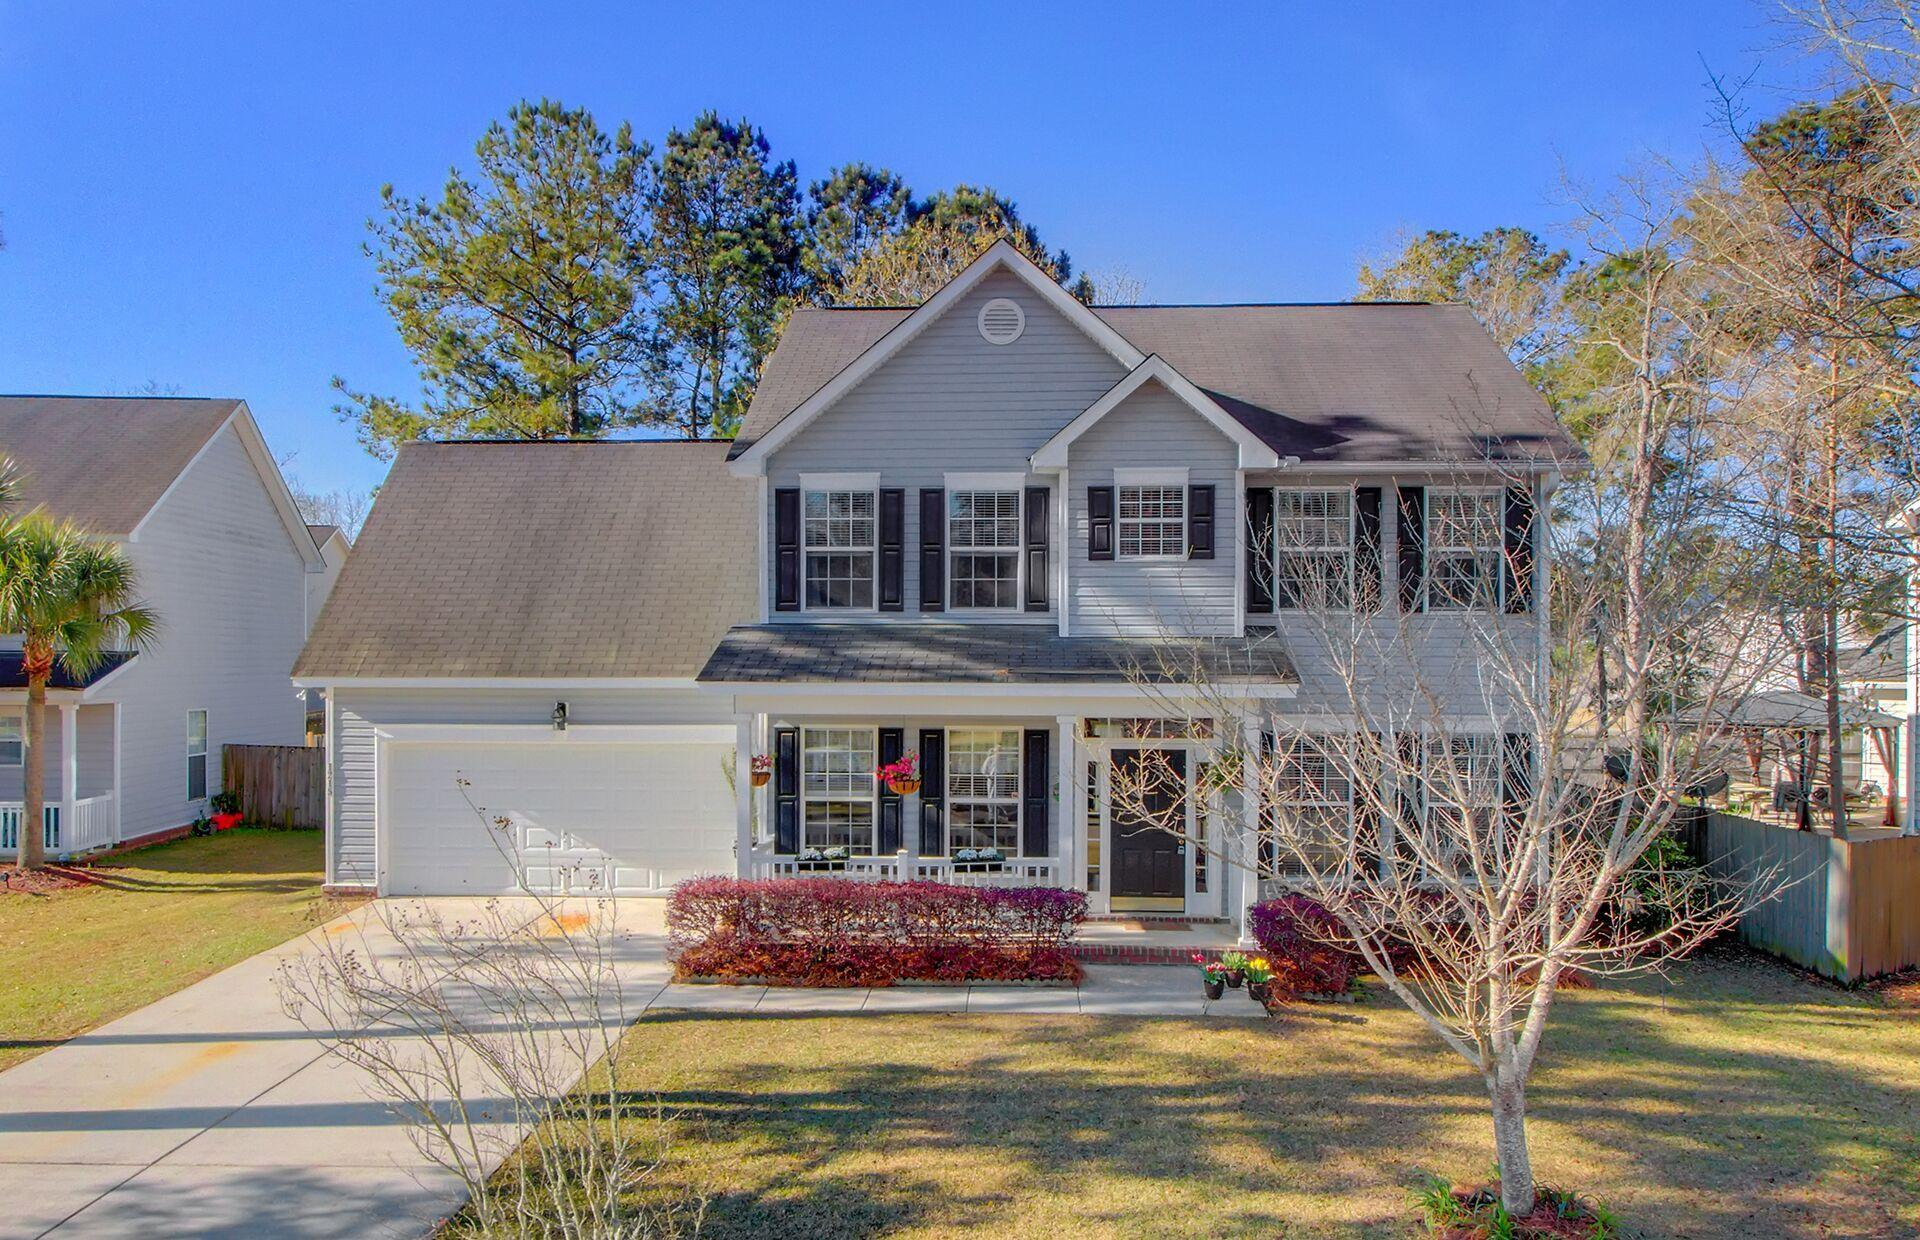 1215 Creek Stone Way Hanahan, SC 29410